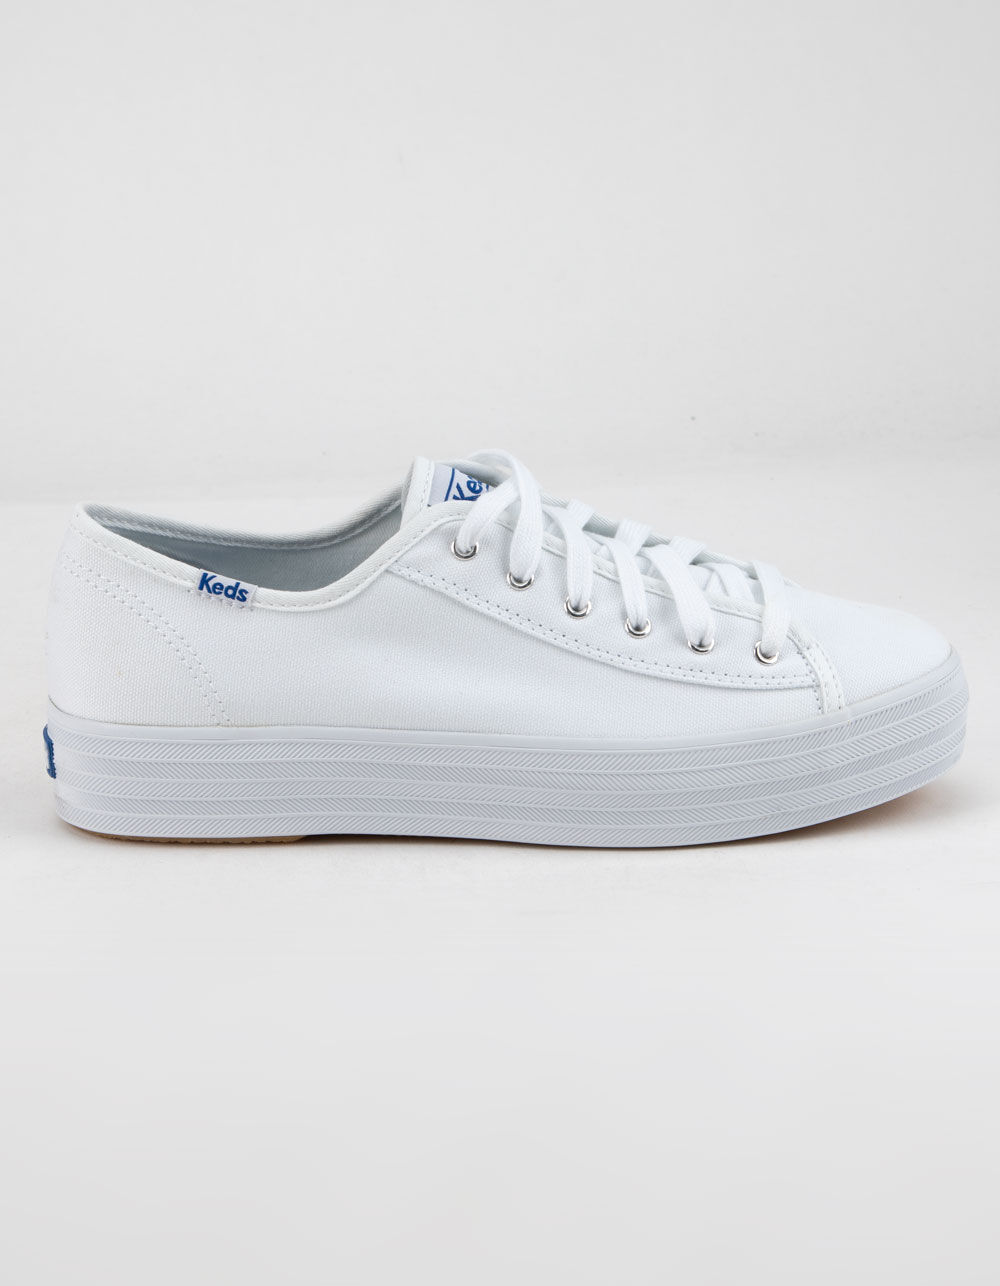 KEDS Triple Kick White Platform Shoes